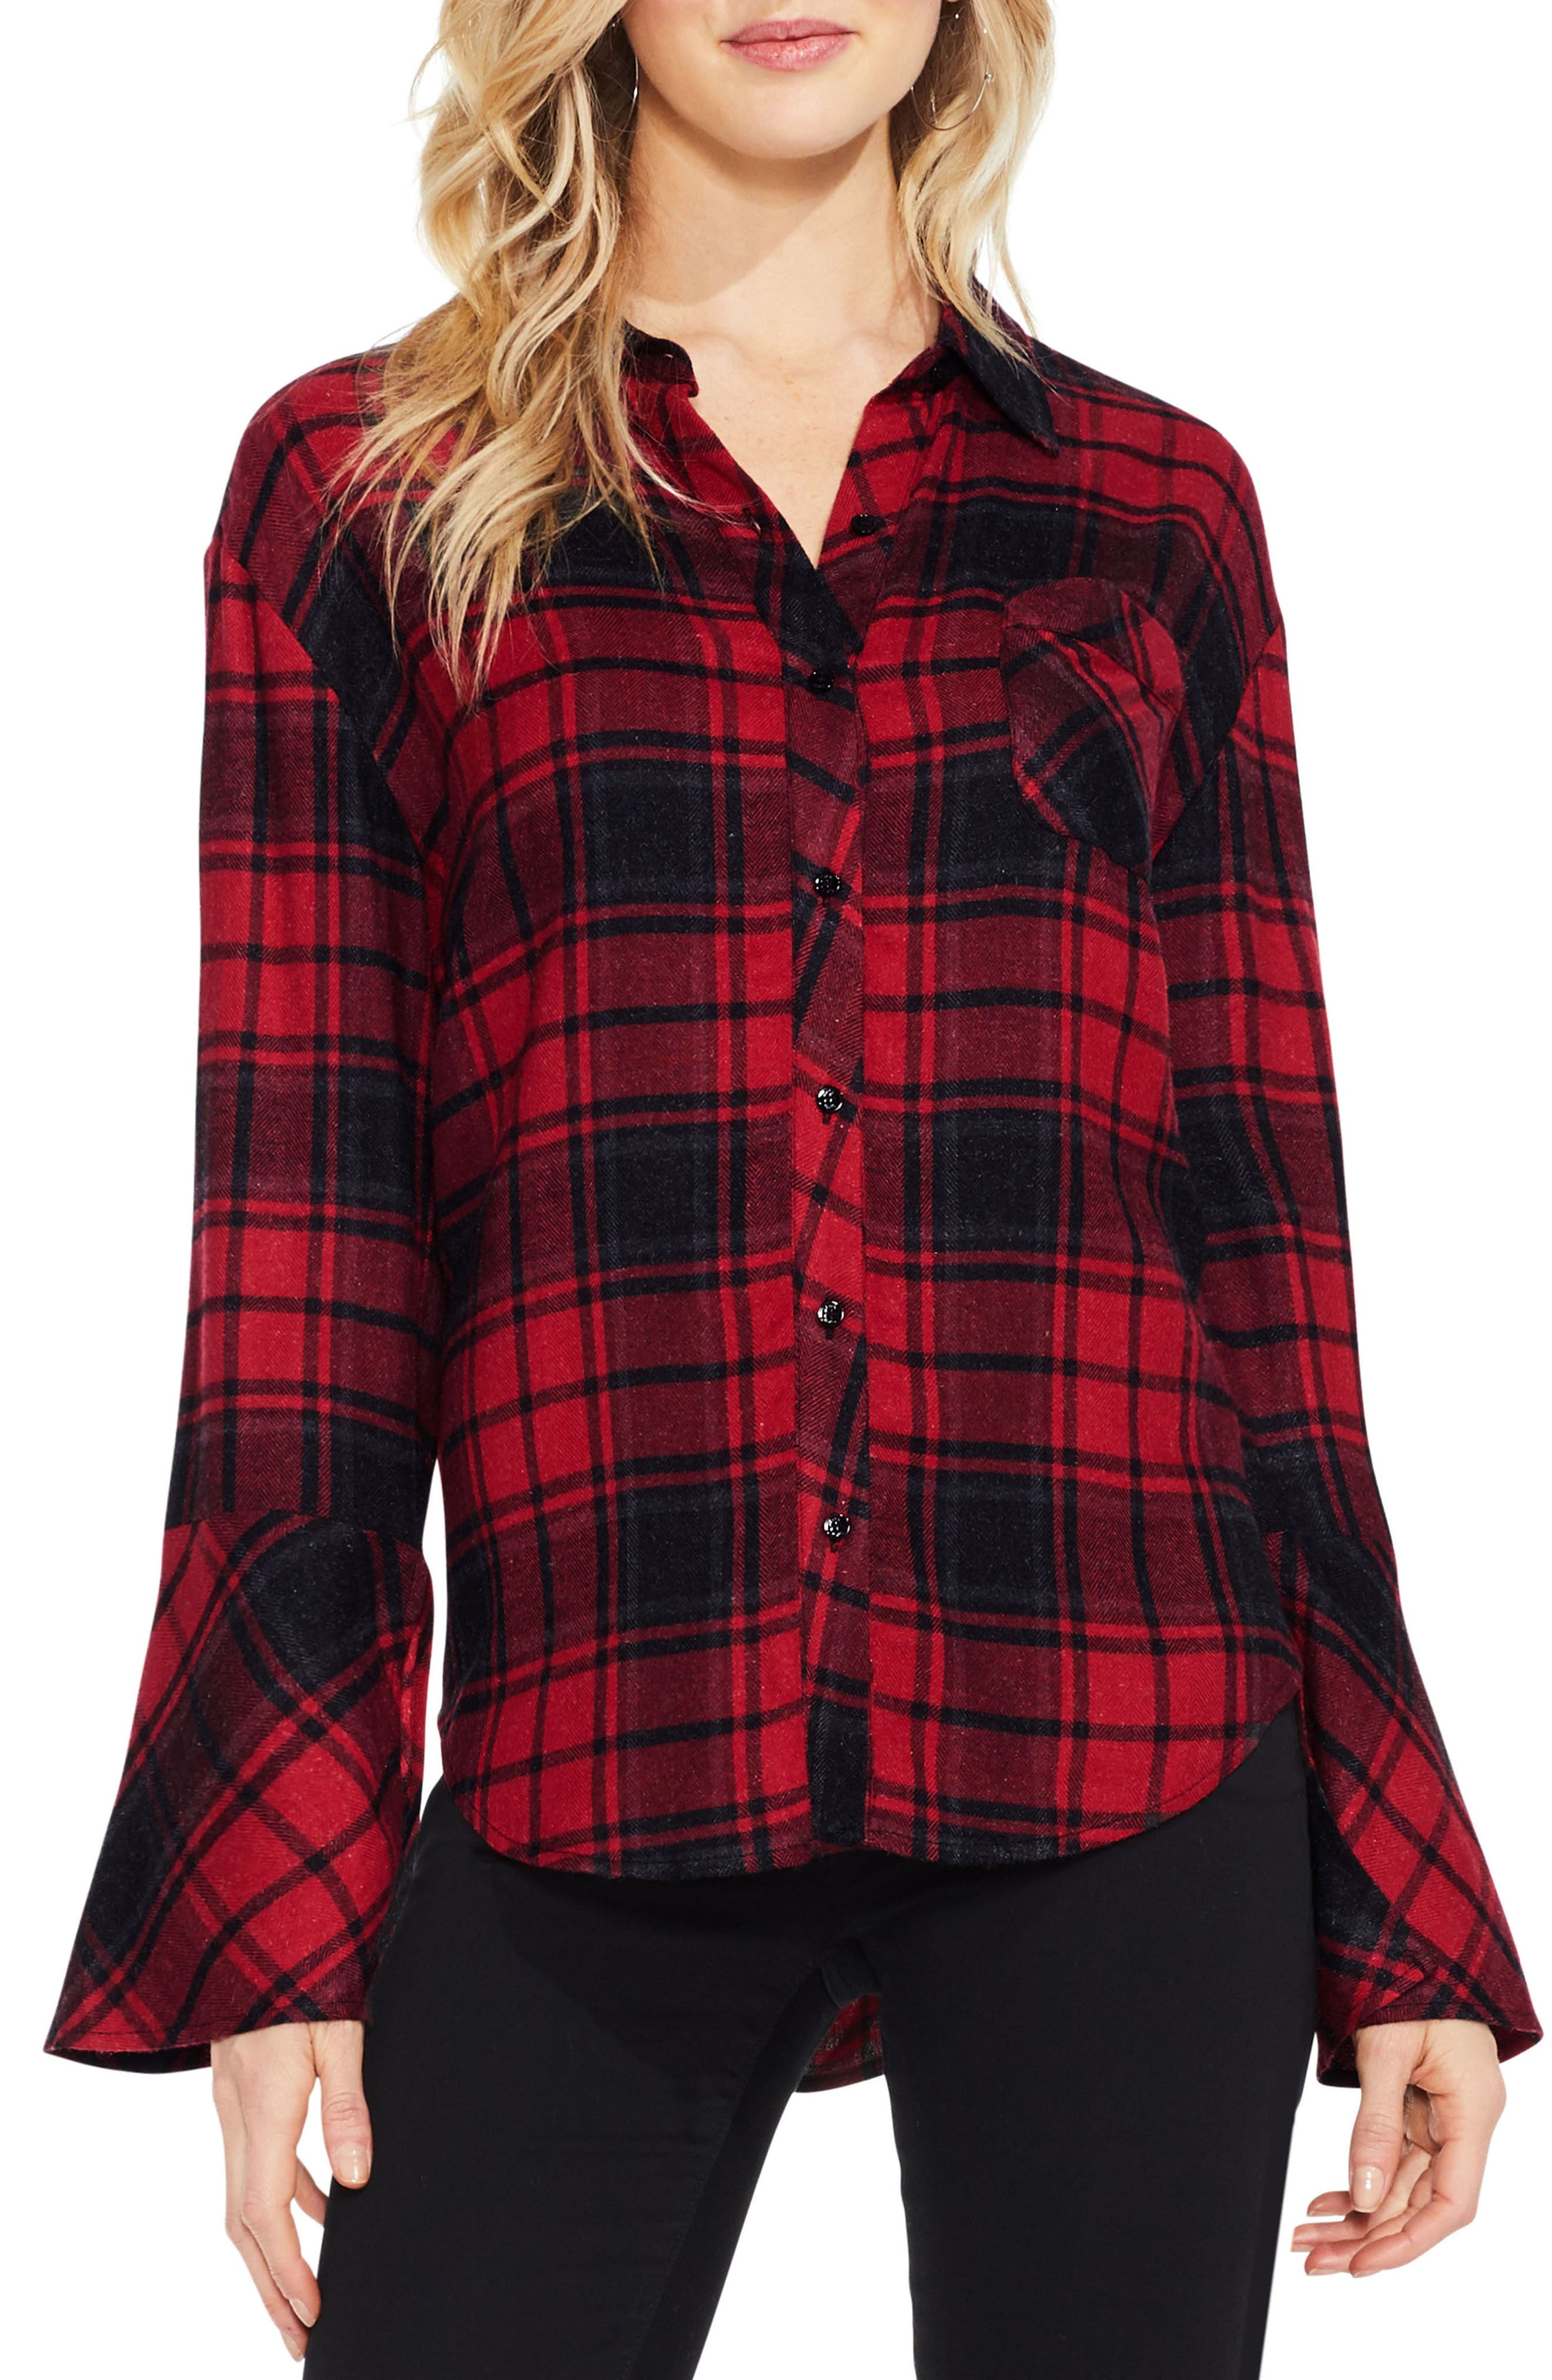 Alternate Image 1 Selected - Two by Vince Camuto Stateside Bell Sleeve Shirt